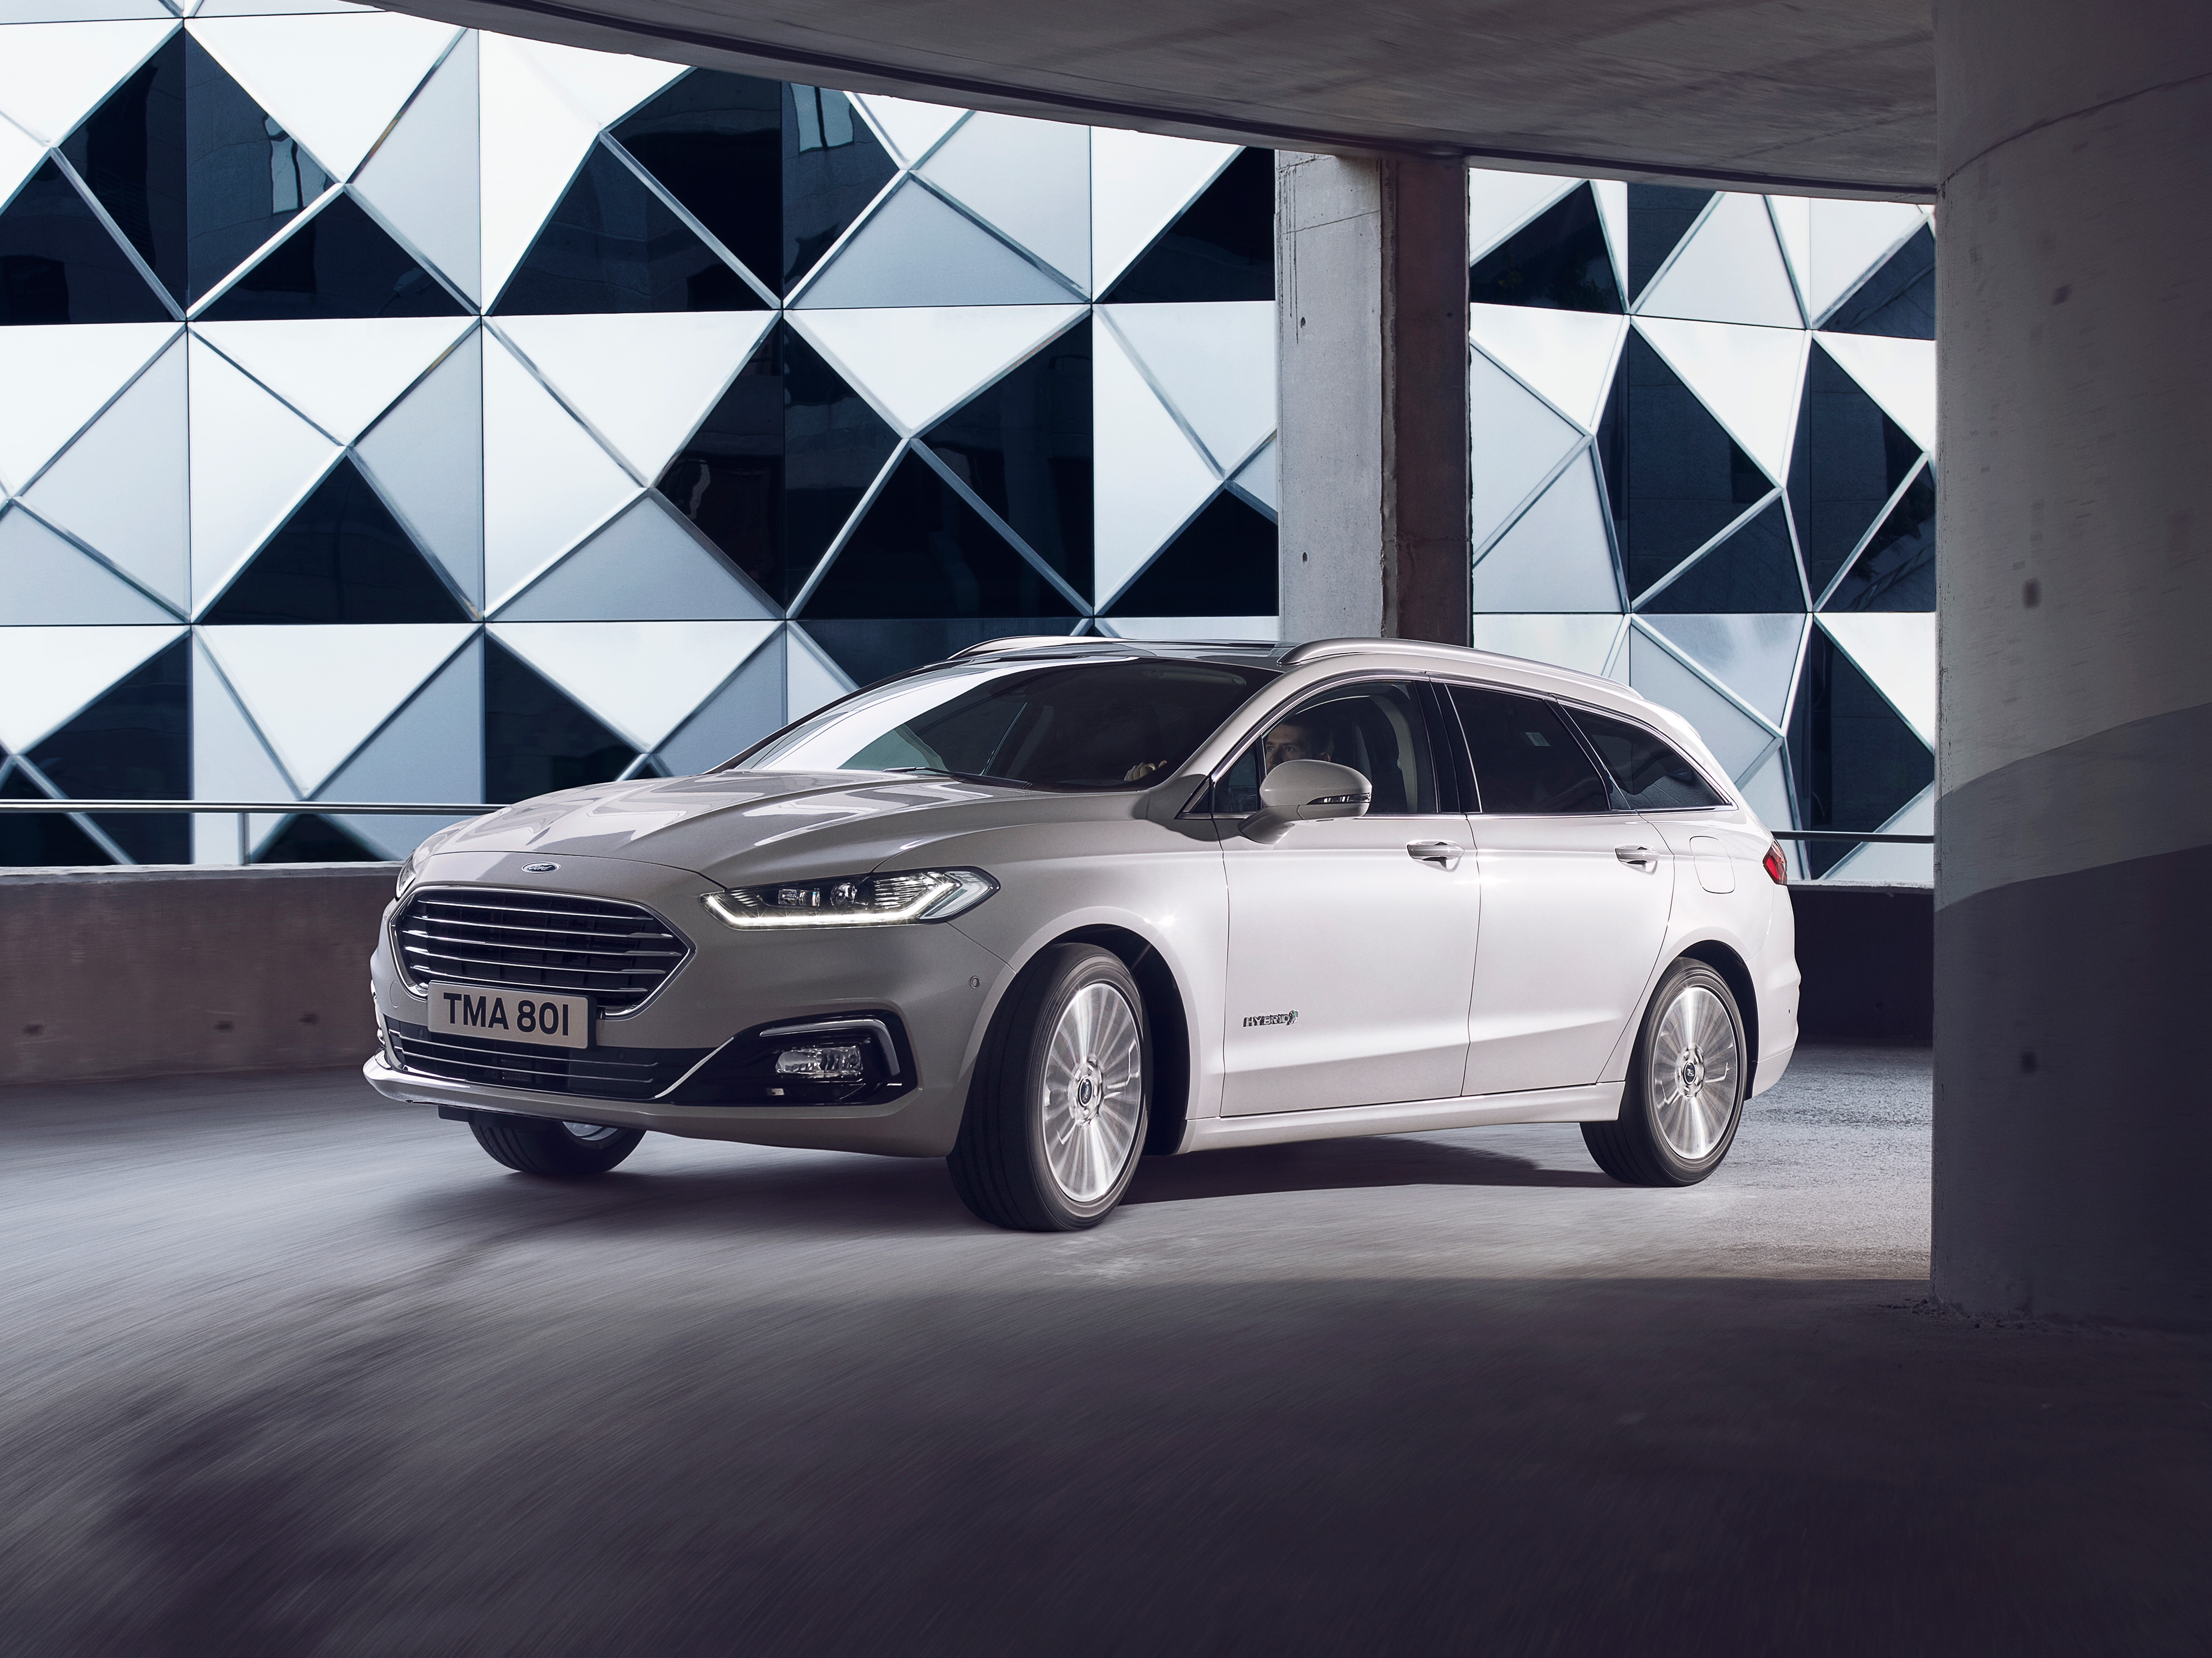 Facelifted Mondeo includes hybrid estate and new diesel tech